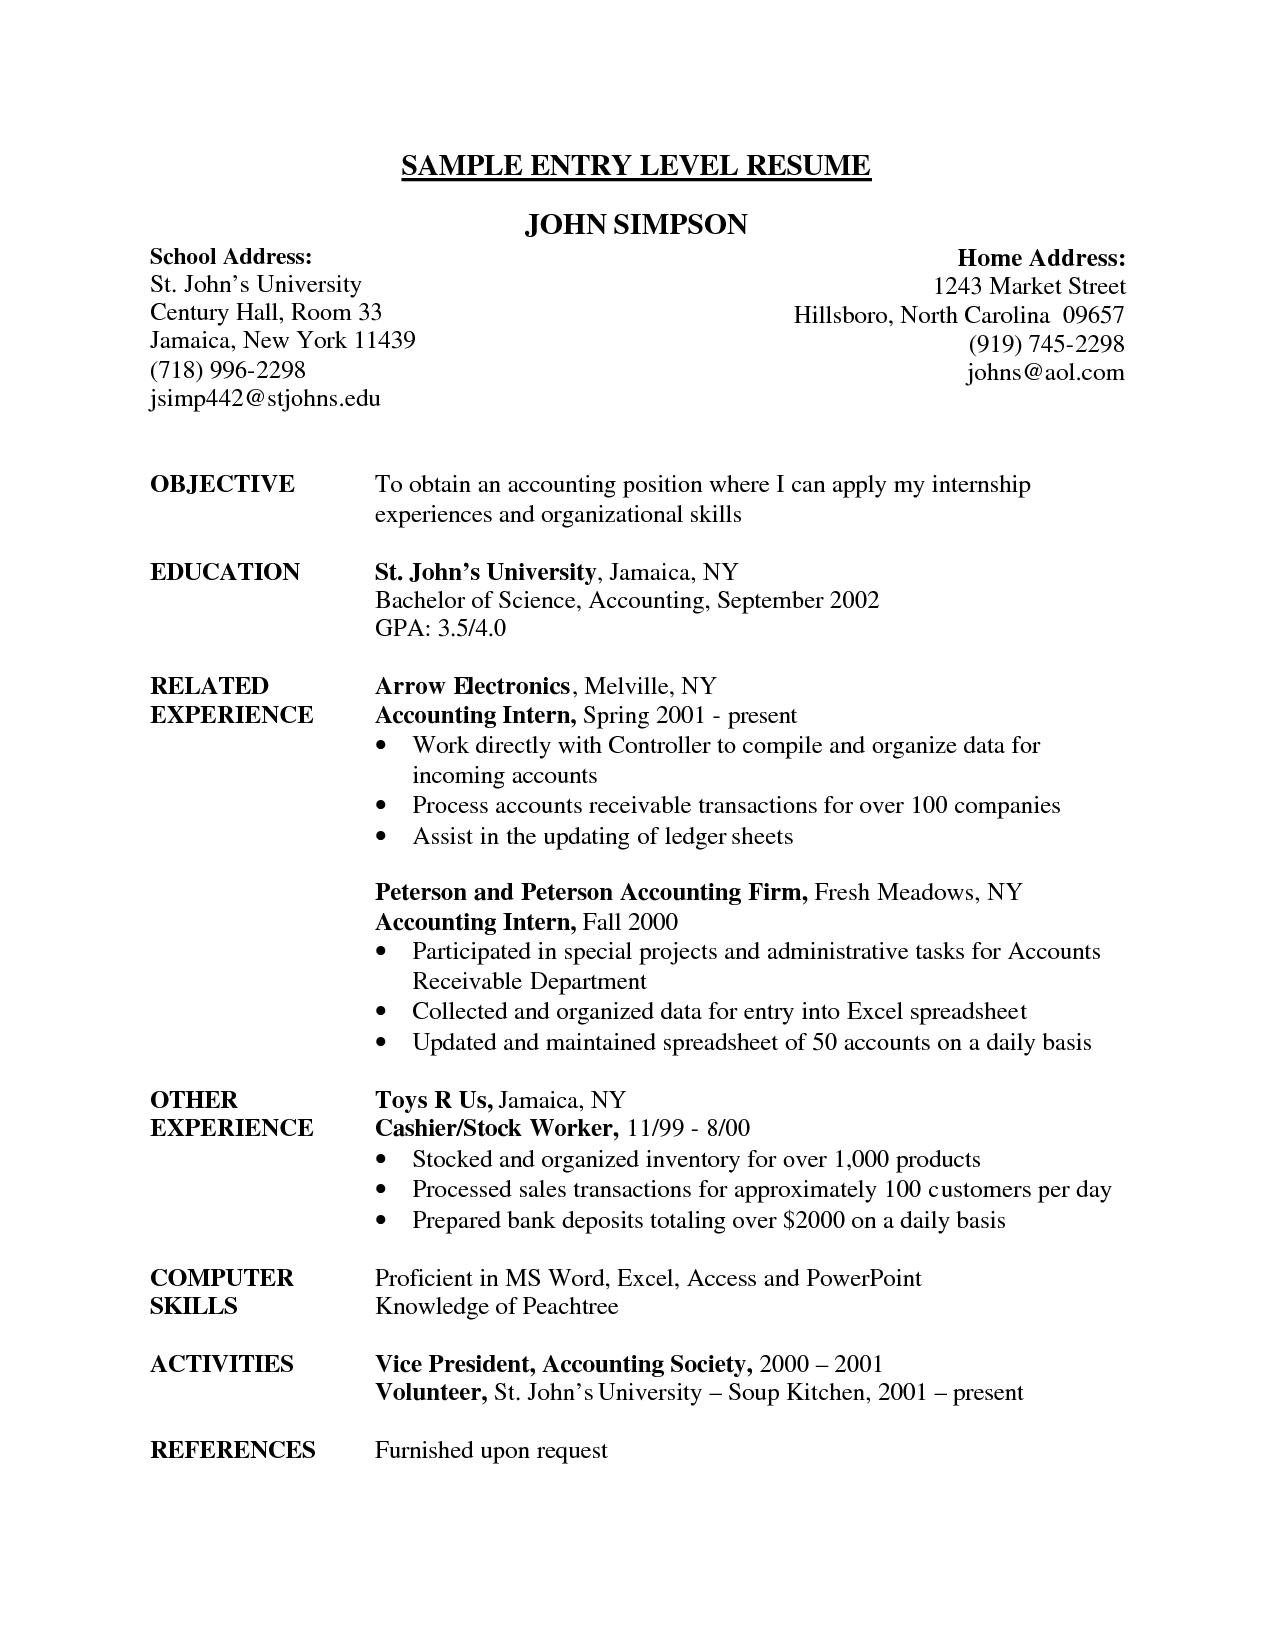 entry level accounting resume sample objective related experience - Professional Accounting Resume Samples